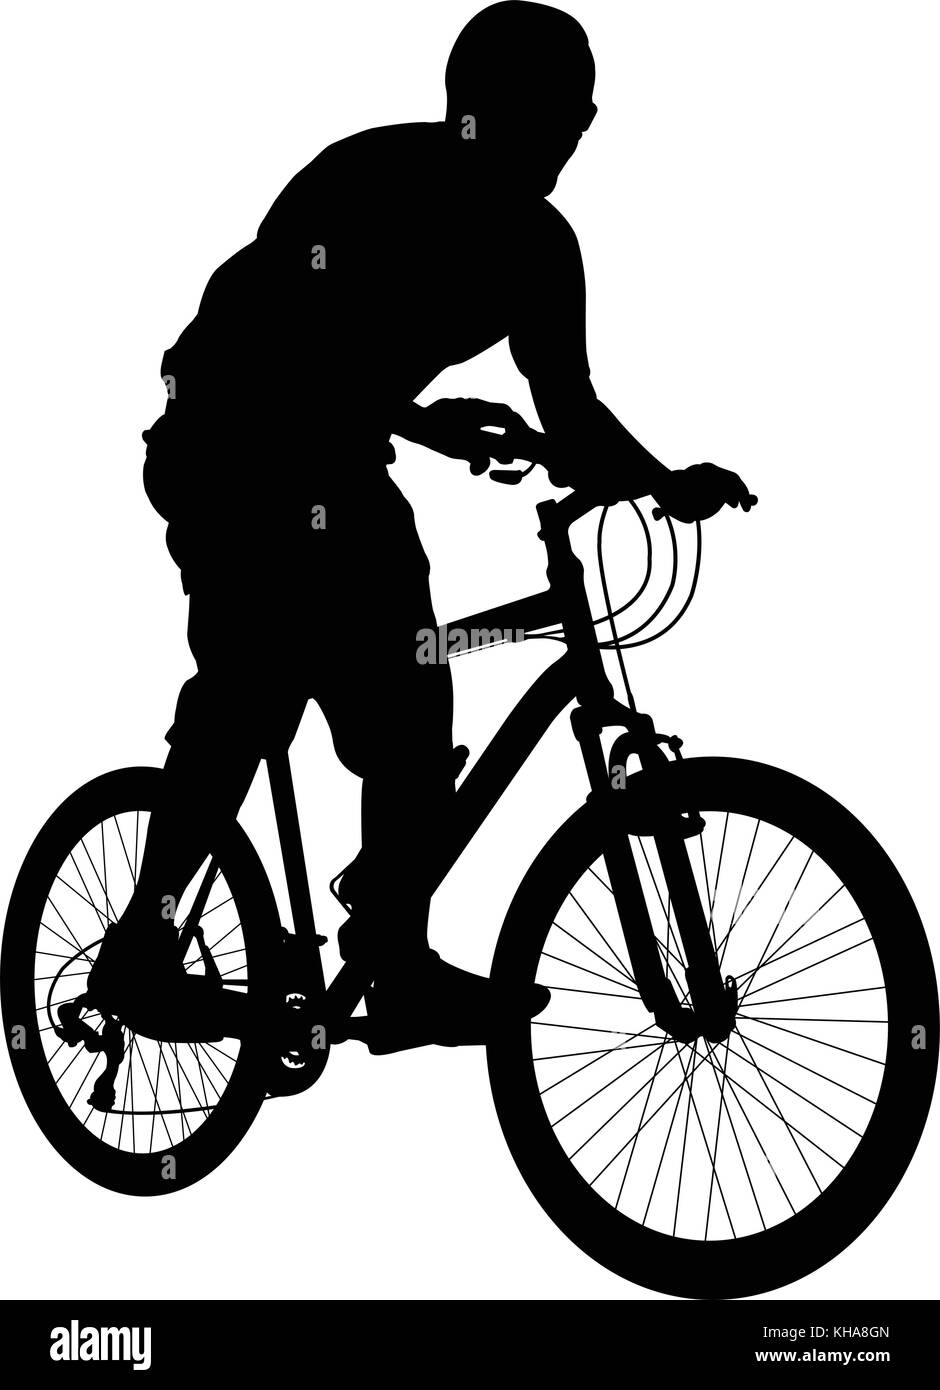 mtb cyclist silhouette - vector - Stock Image